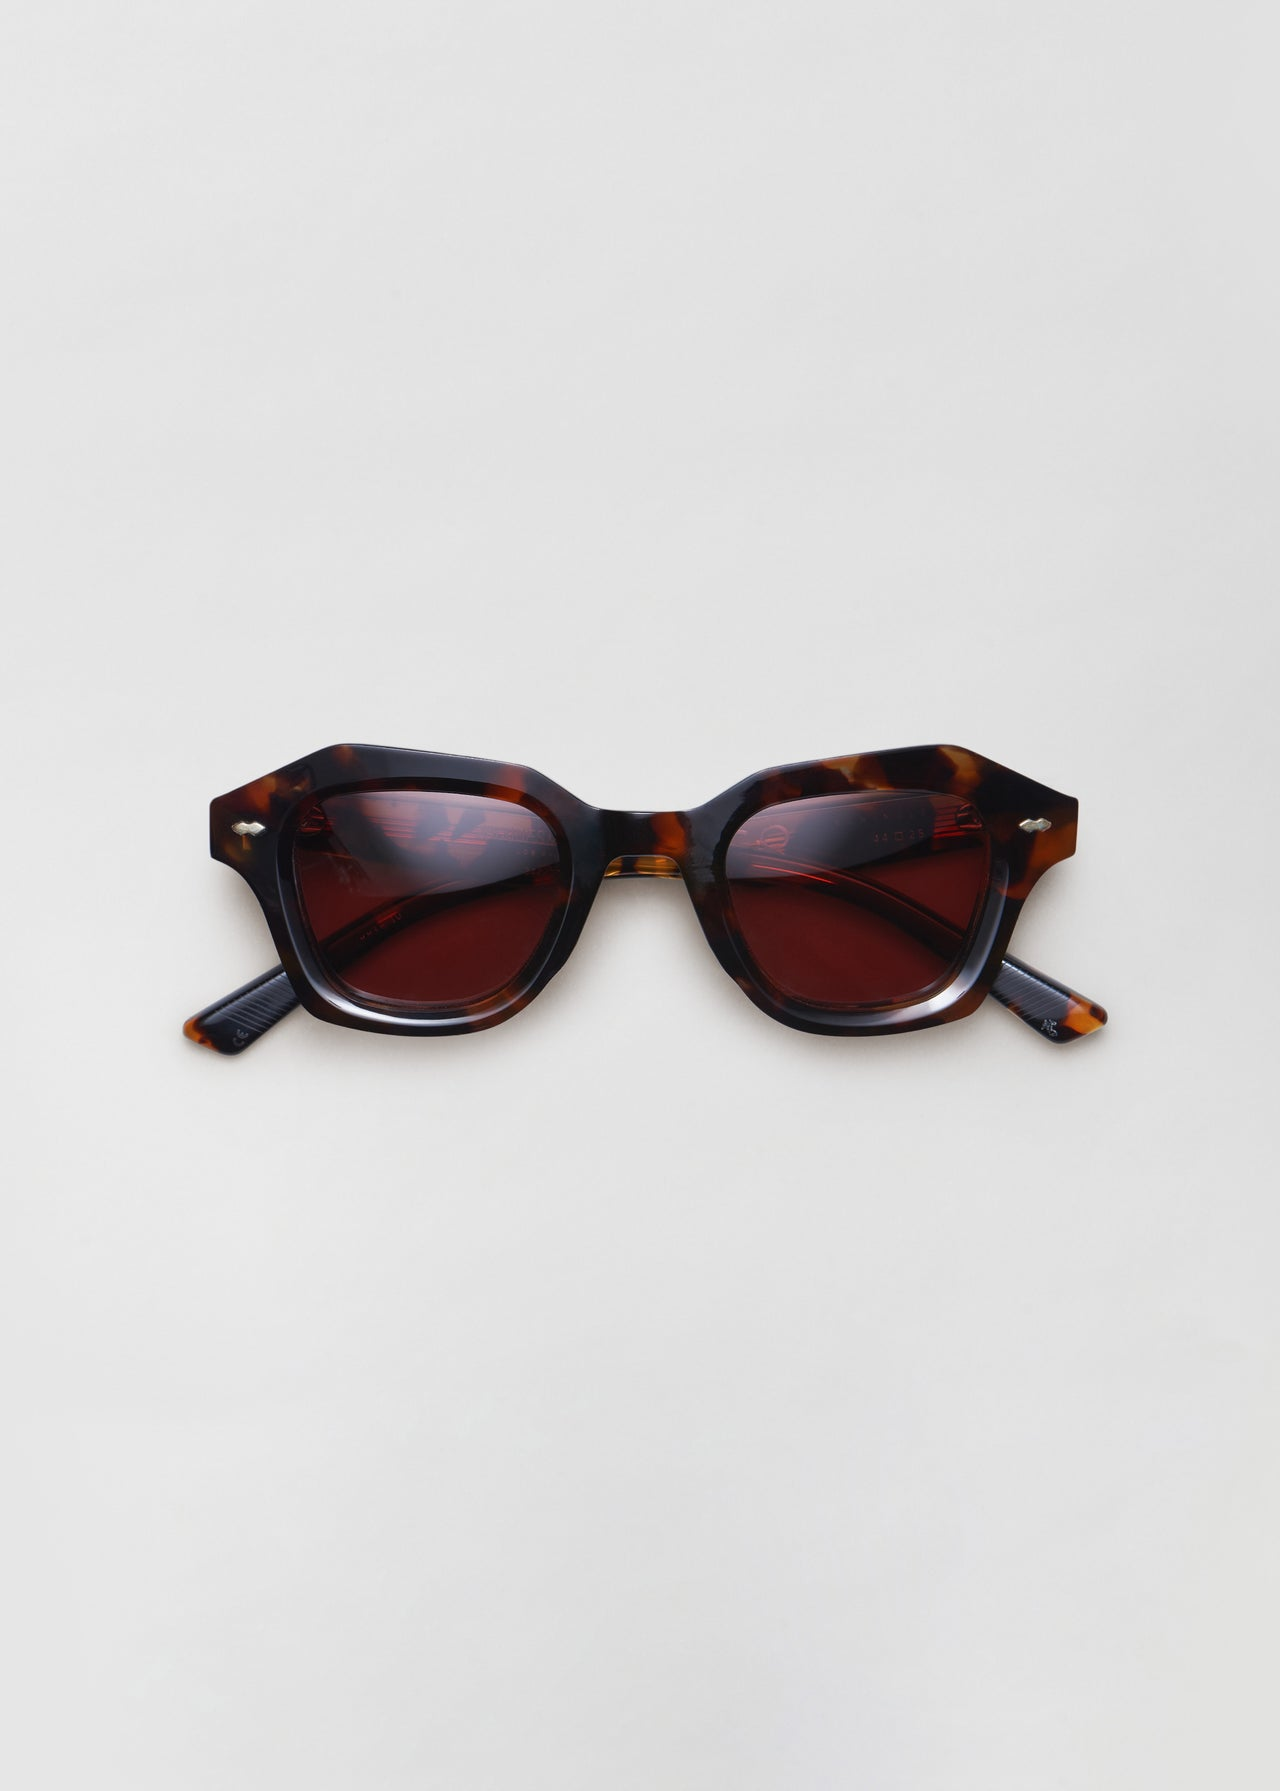 Schindler Sunglasses in Lava - CO Collections